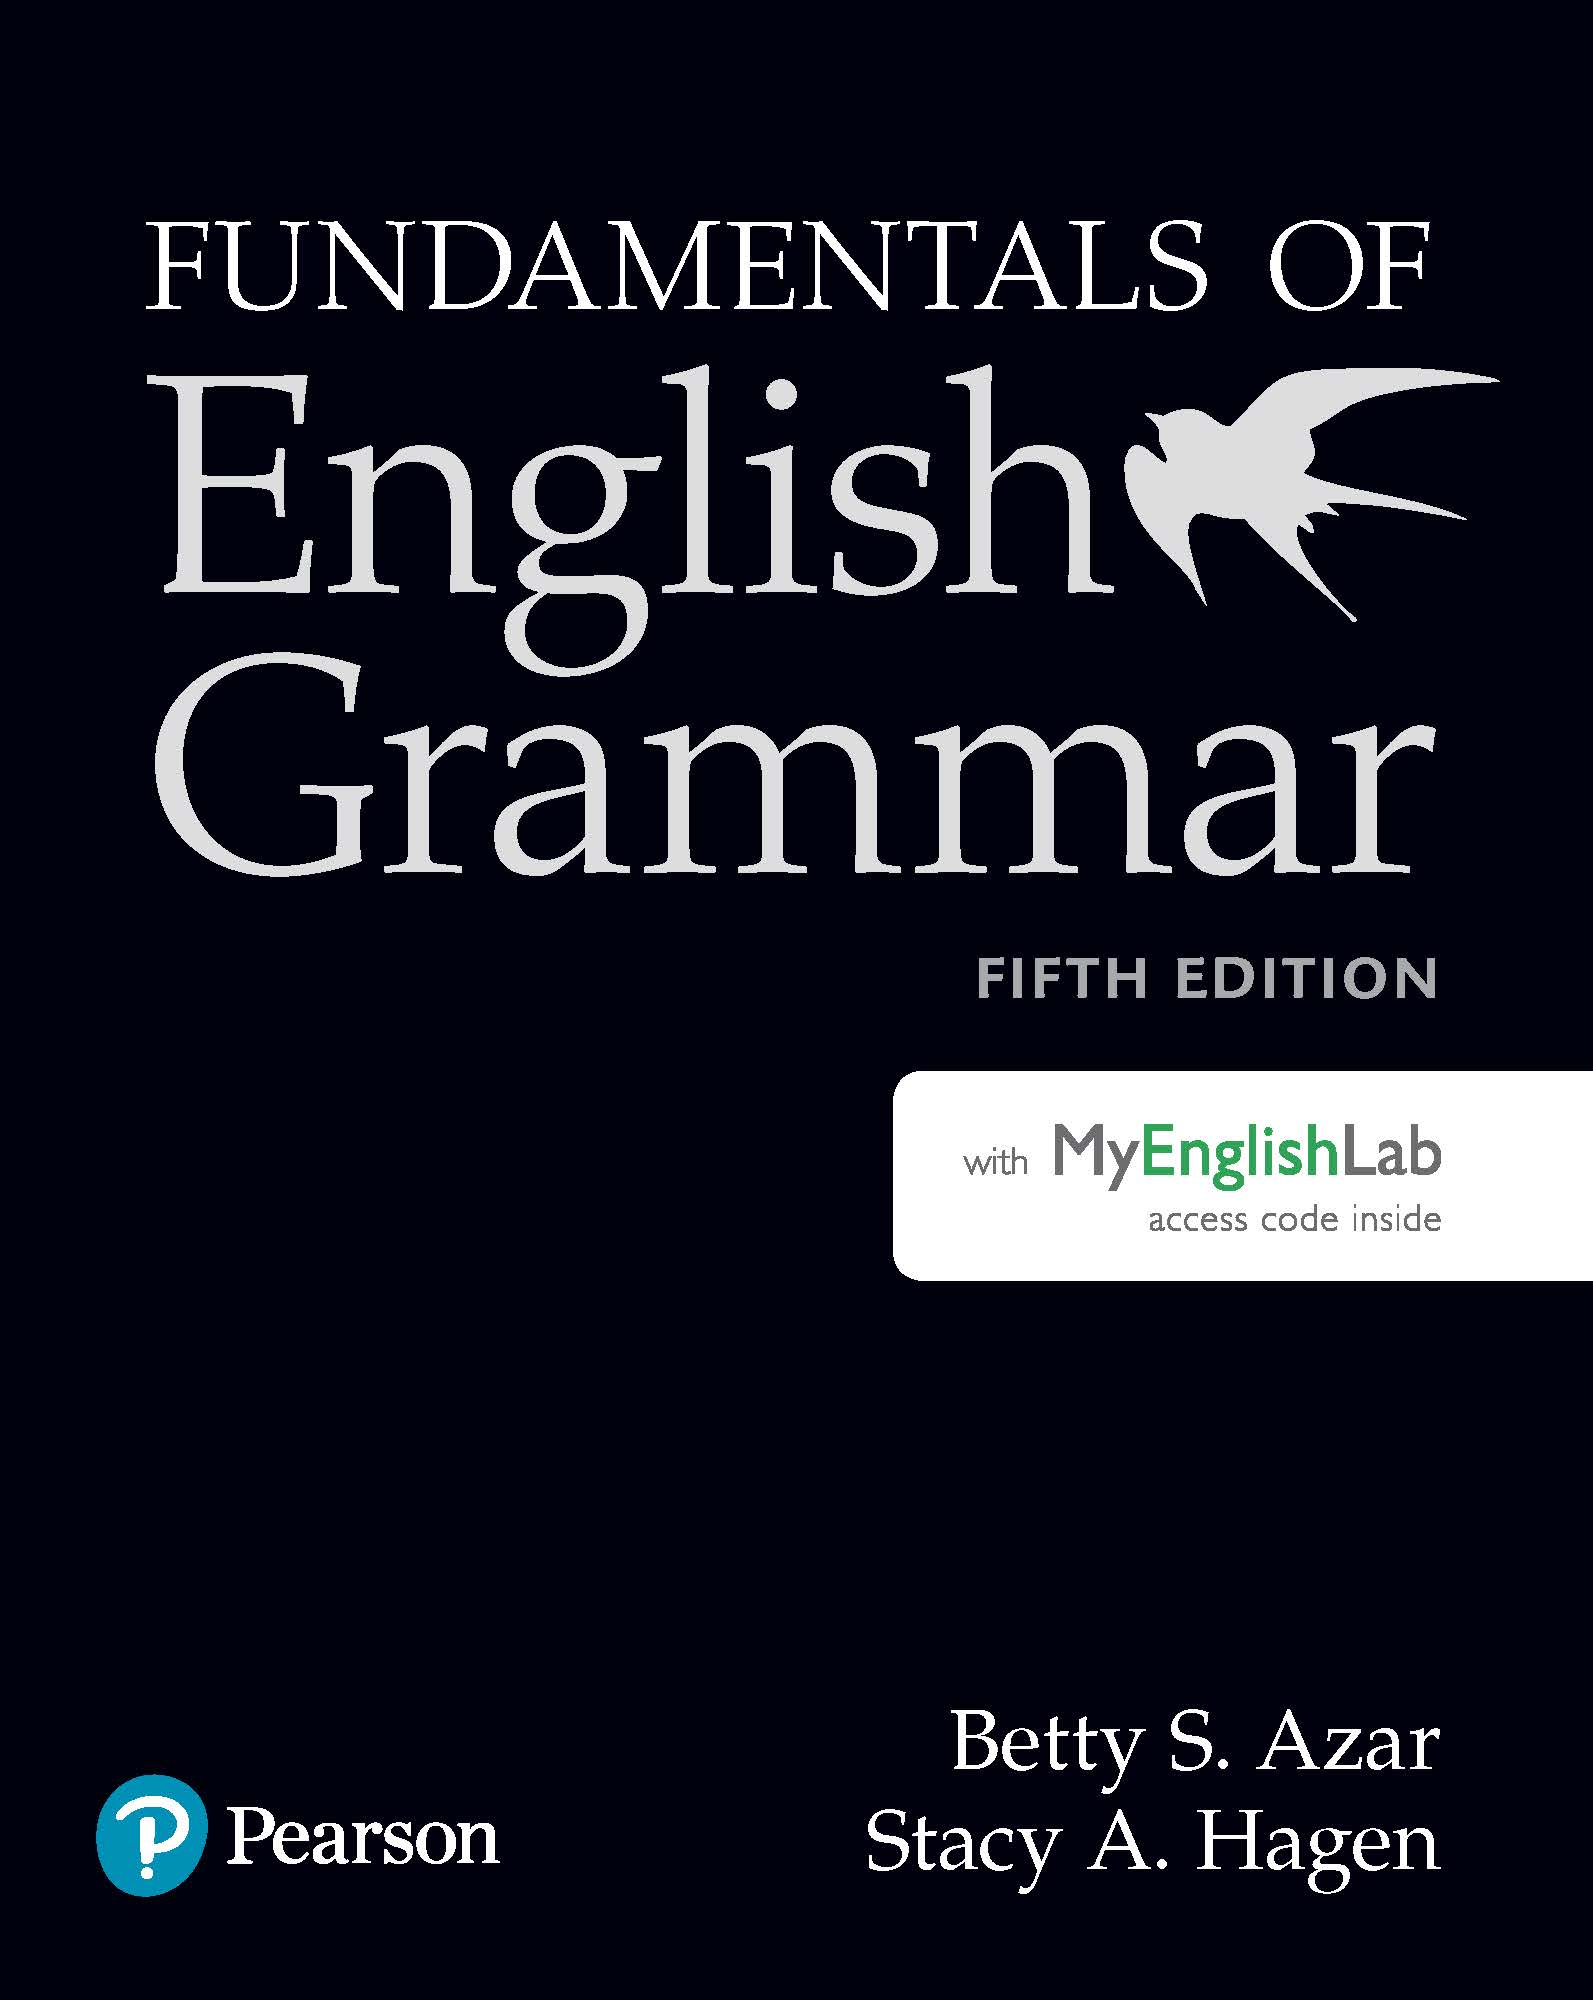 Azar: Fundamentals of English Grammar, Fifth Edition eText